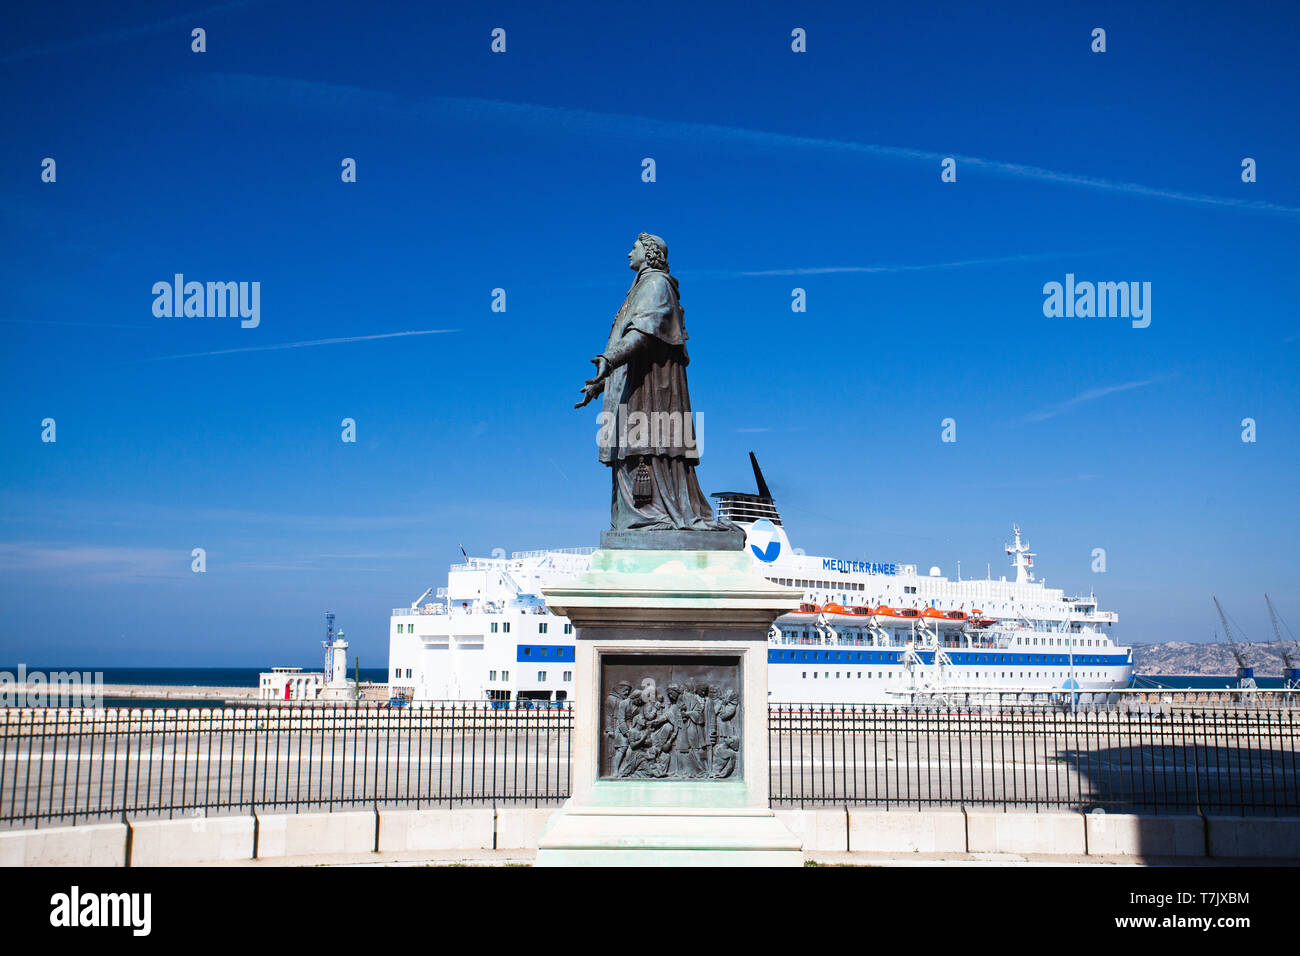 Marseille, France - May 6, 2011: Statue and luxury boat next to Marseille Cathedral. It is a Roman Catholic cathedral, and a national monument of Fran Stock Photo